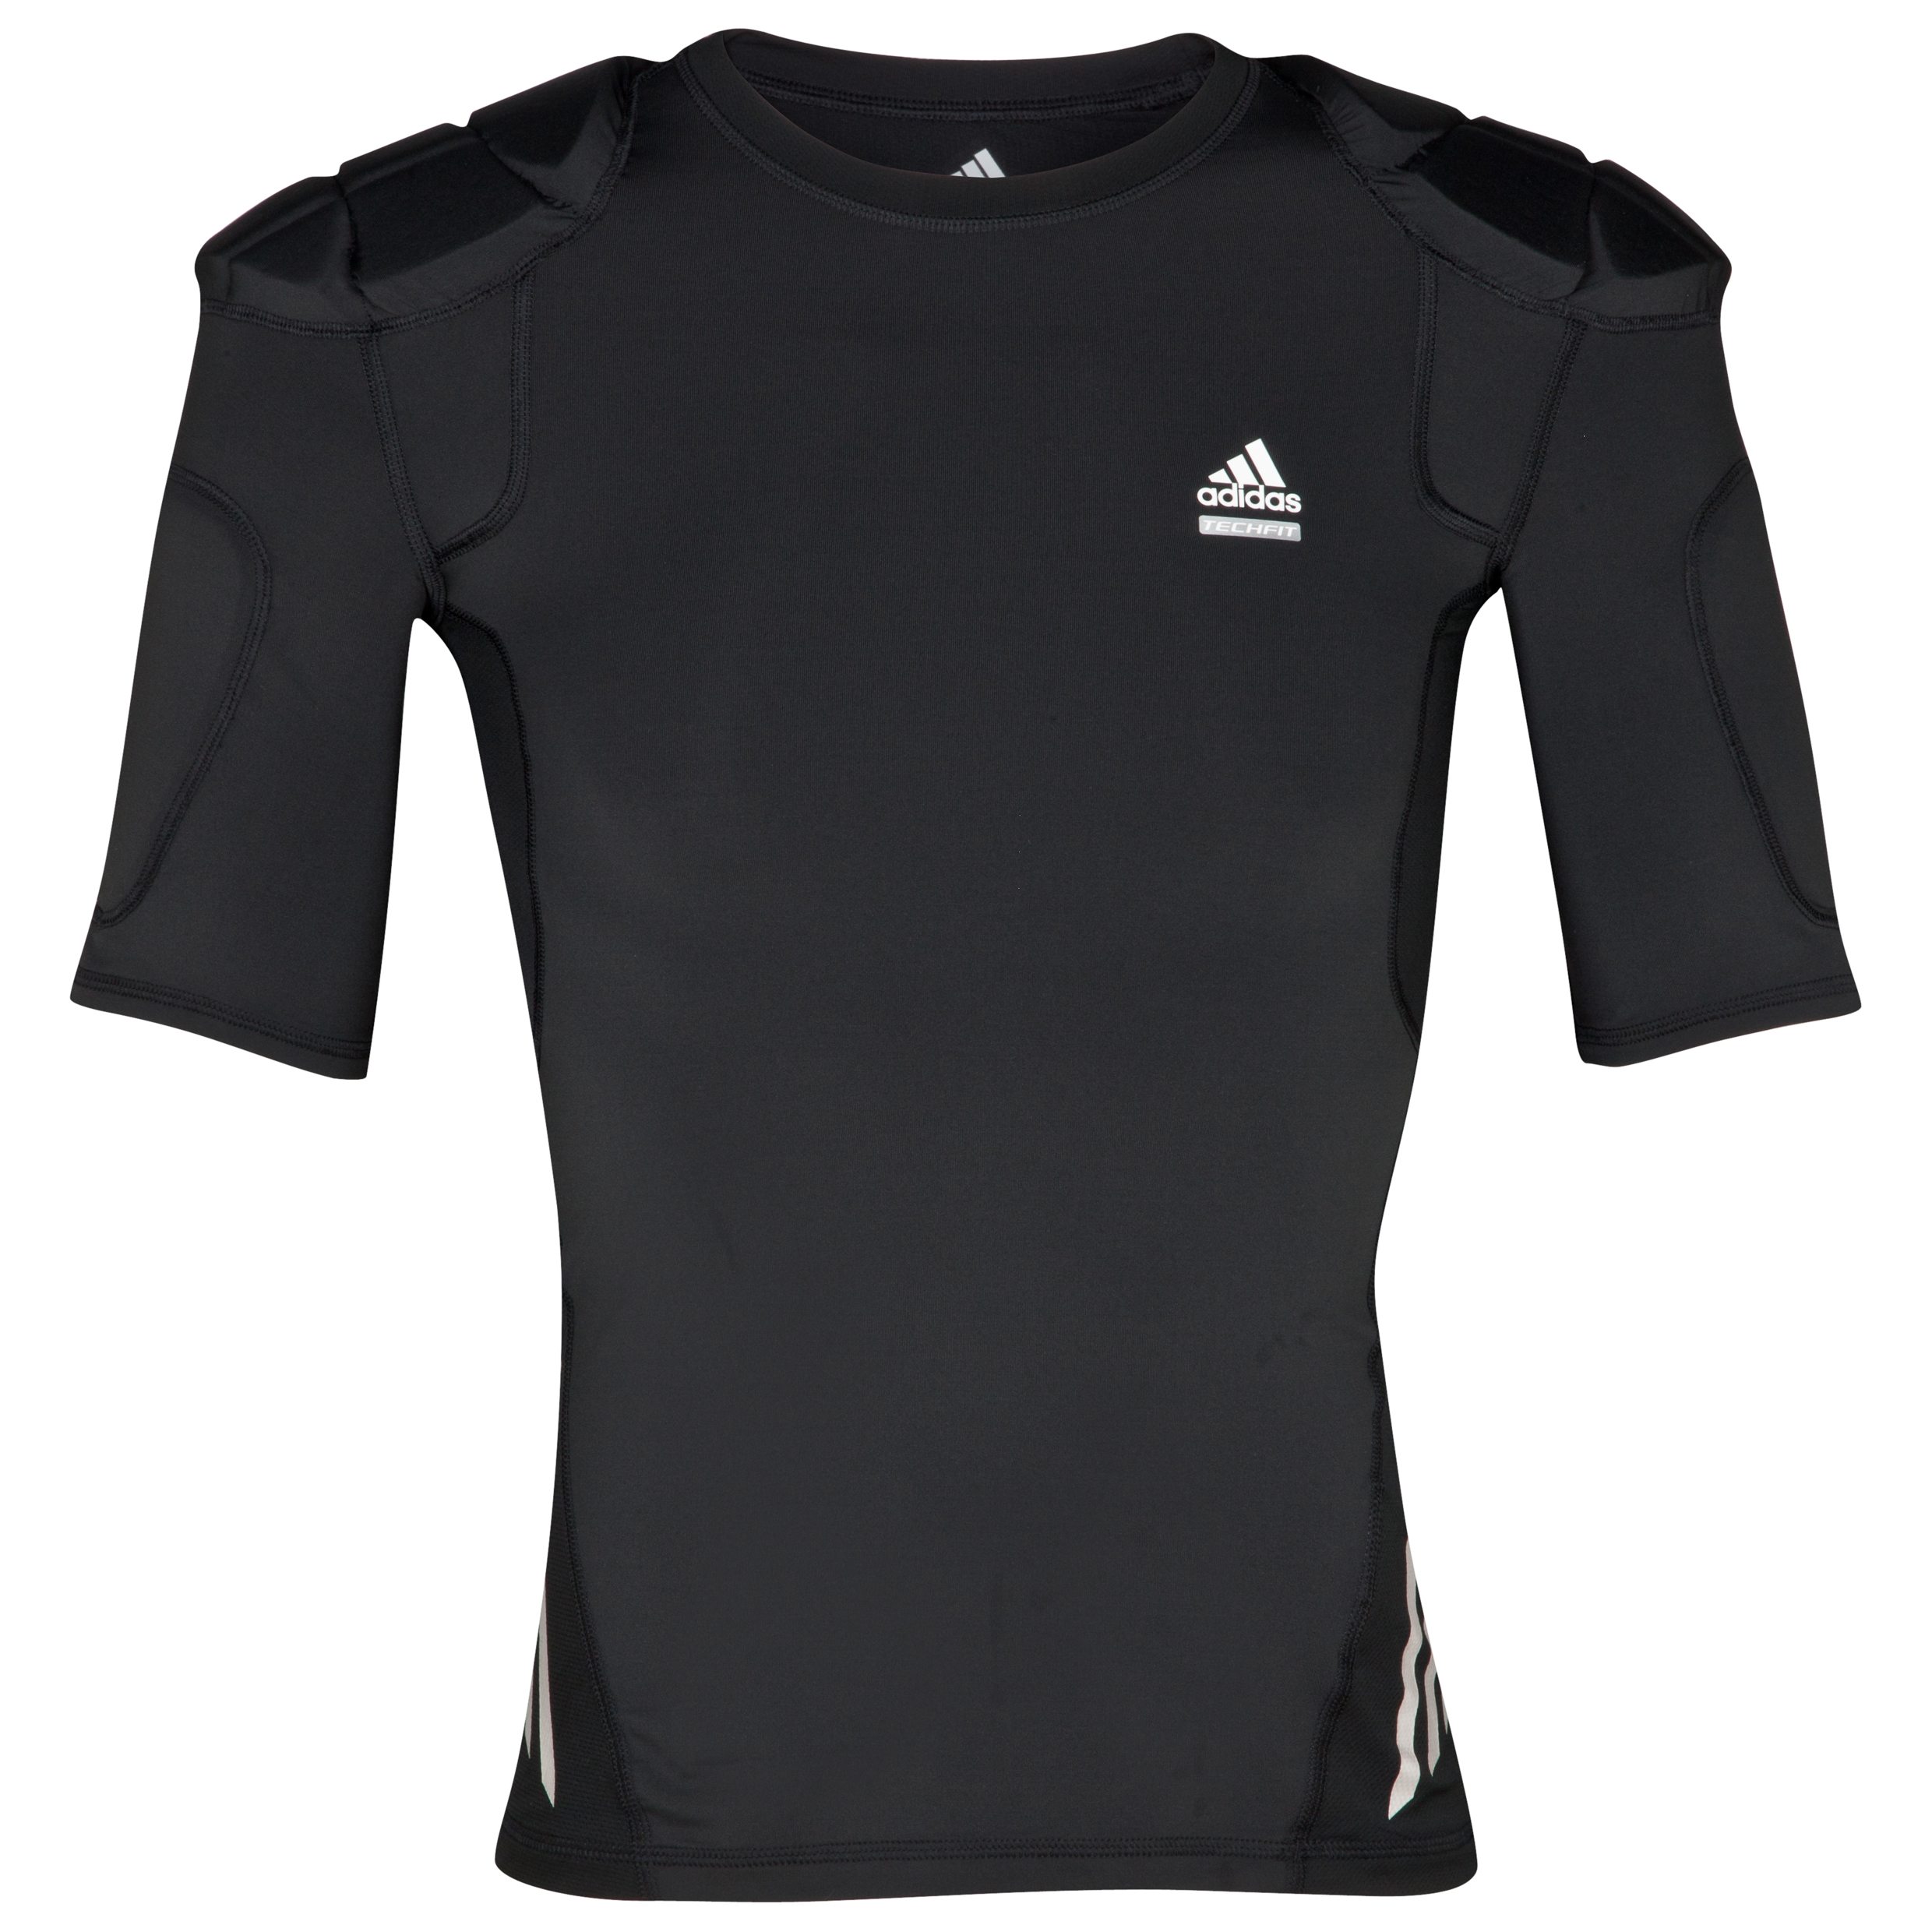 Adidas Tech Fit Rugby Protective Top - Black